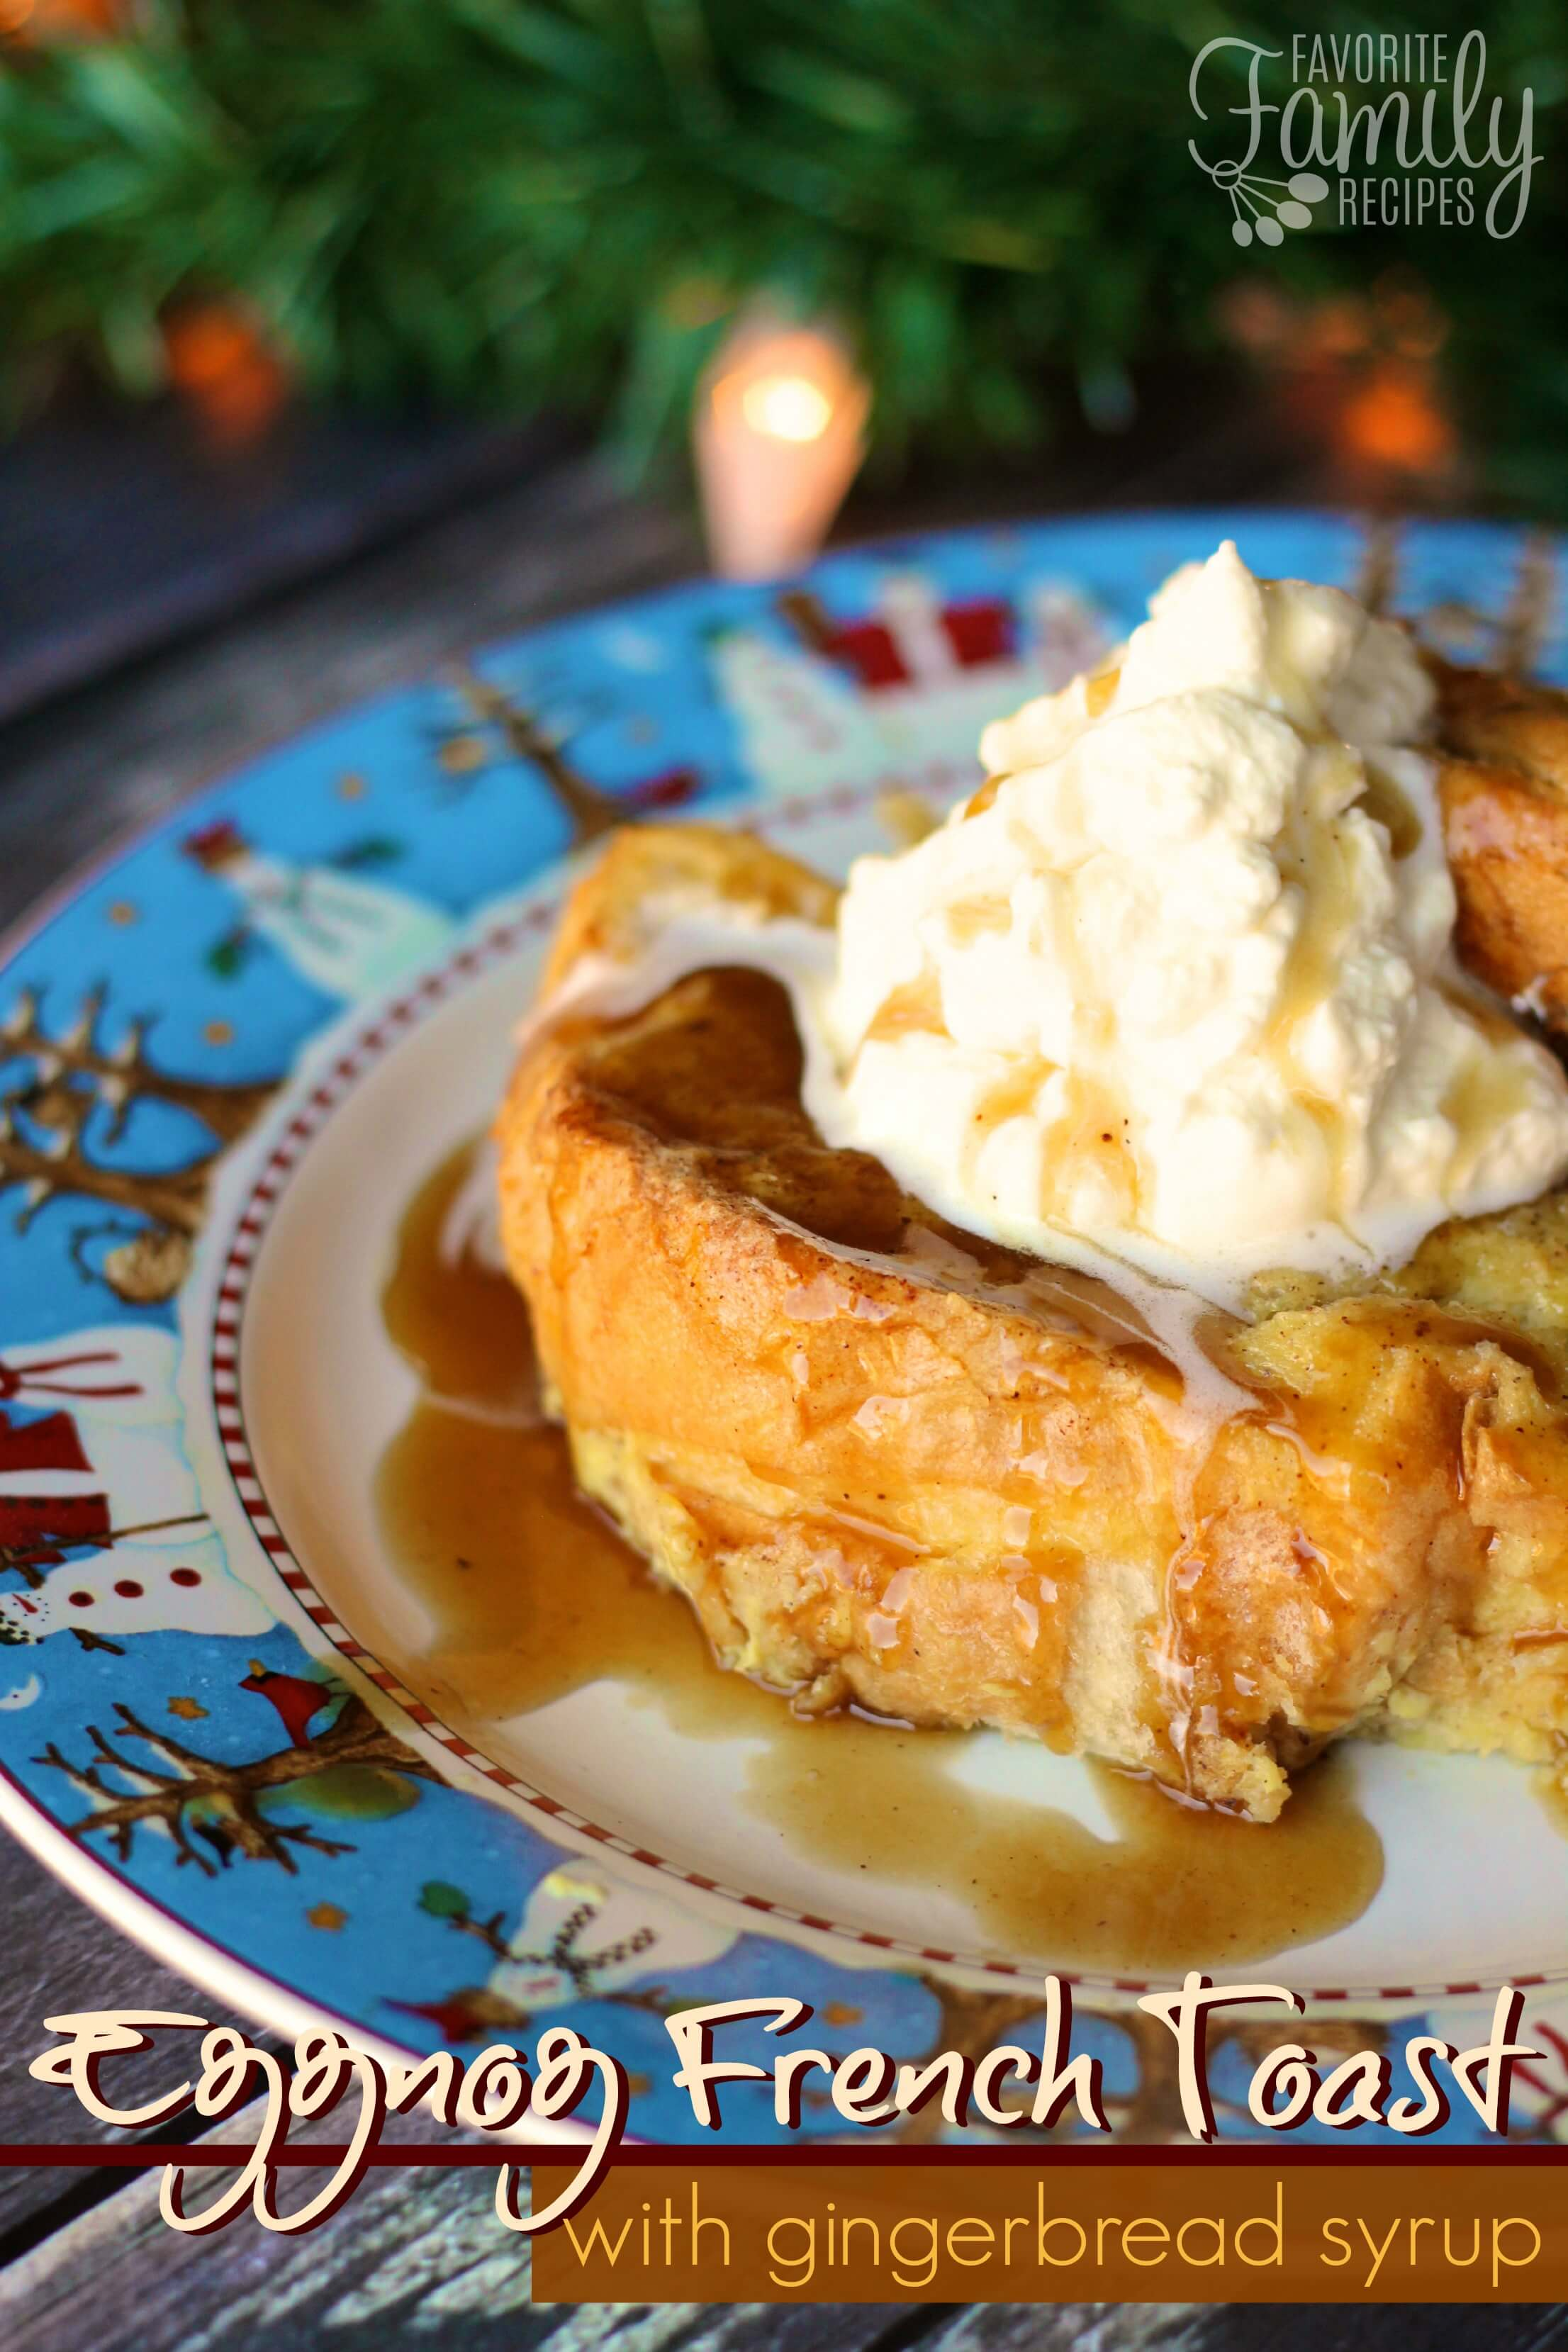 Eggnog French Toast with Gingerbread Syrup | Favorite Family Recipes